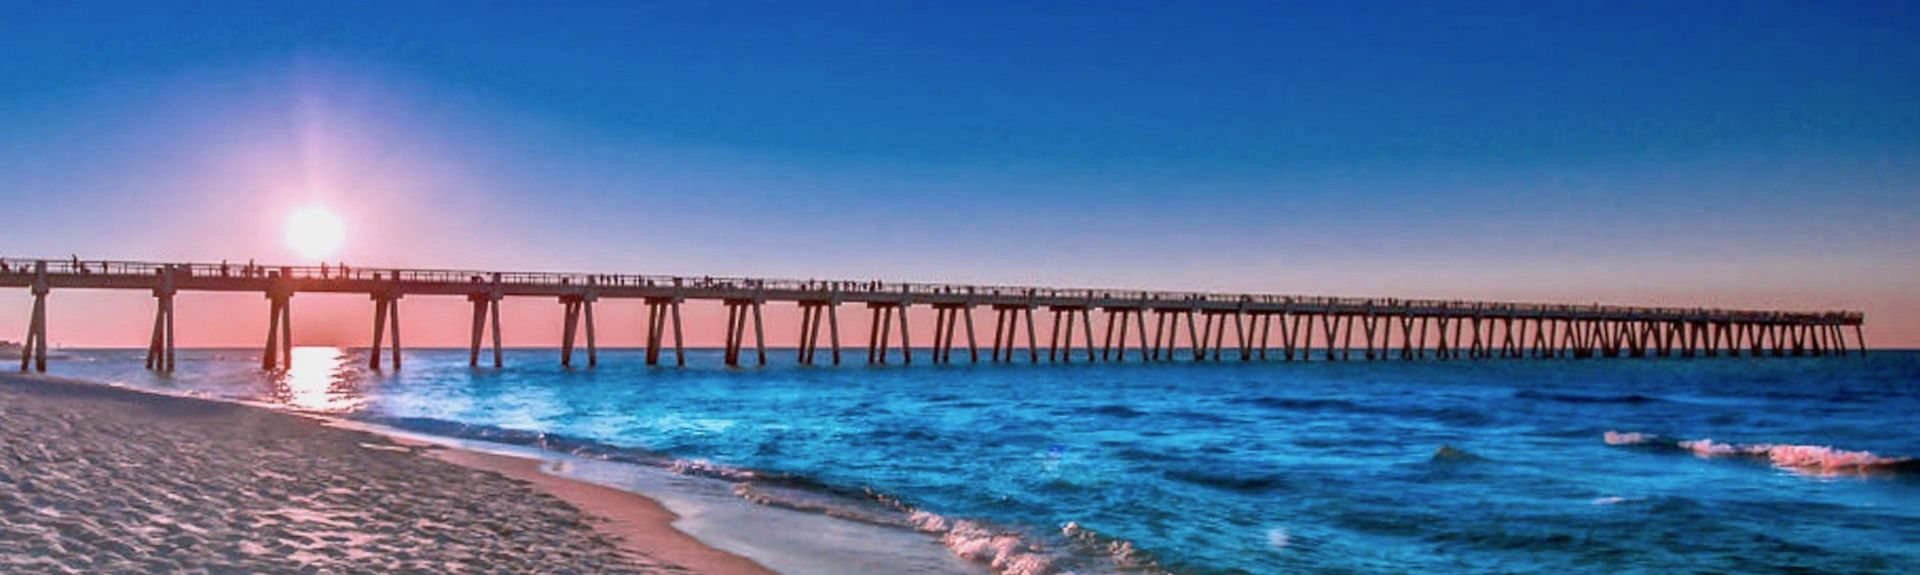 Navarre Beach Regency, Navarre Beach, FL, USA